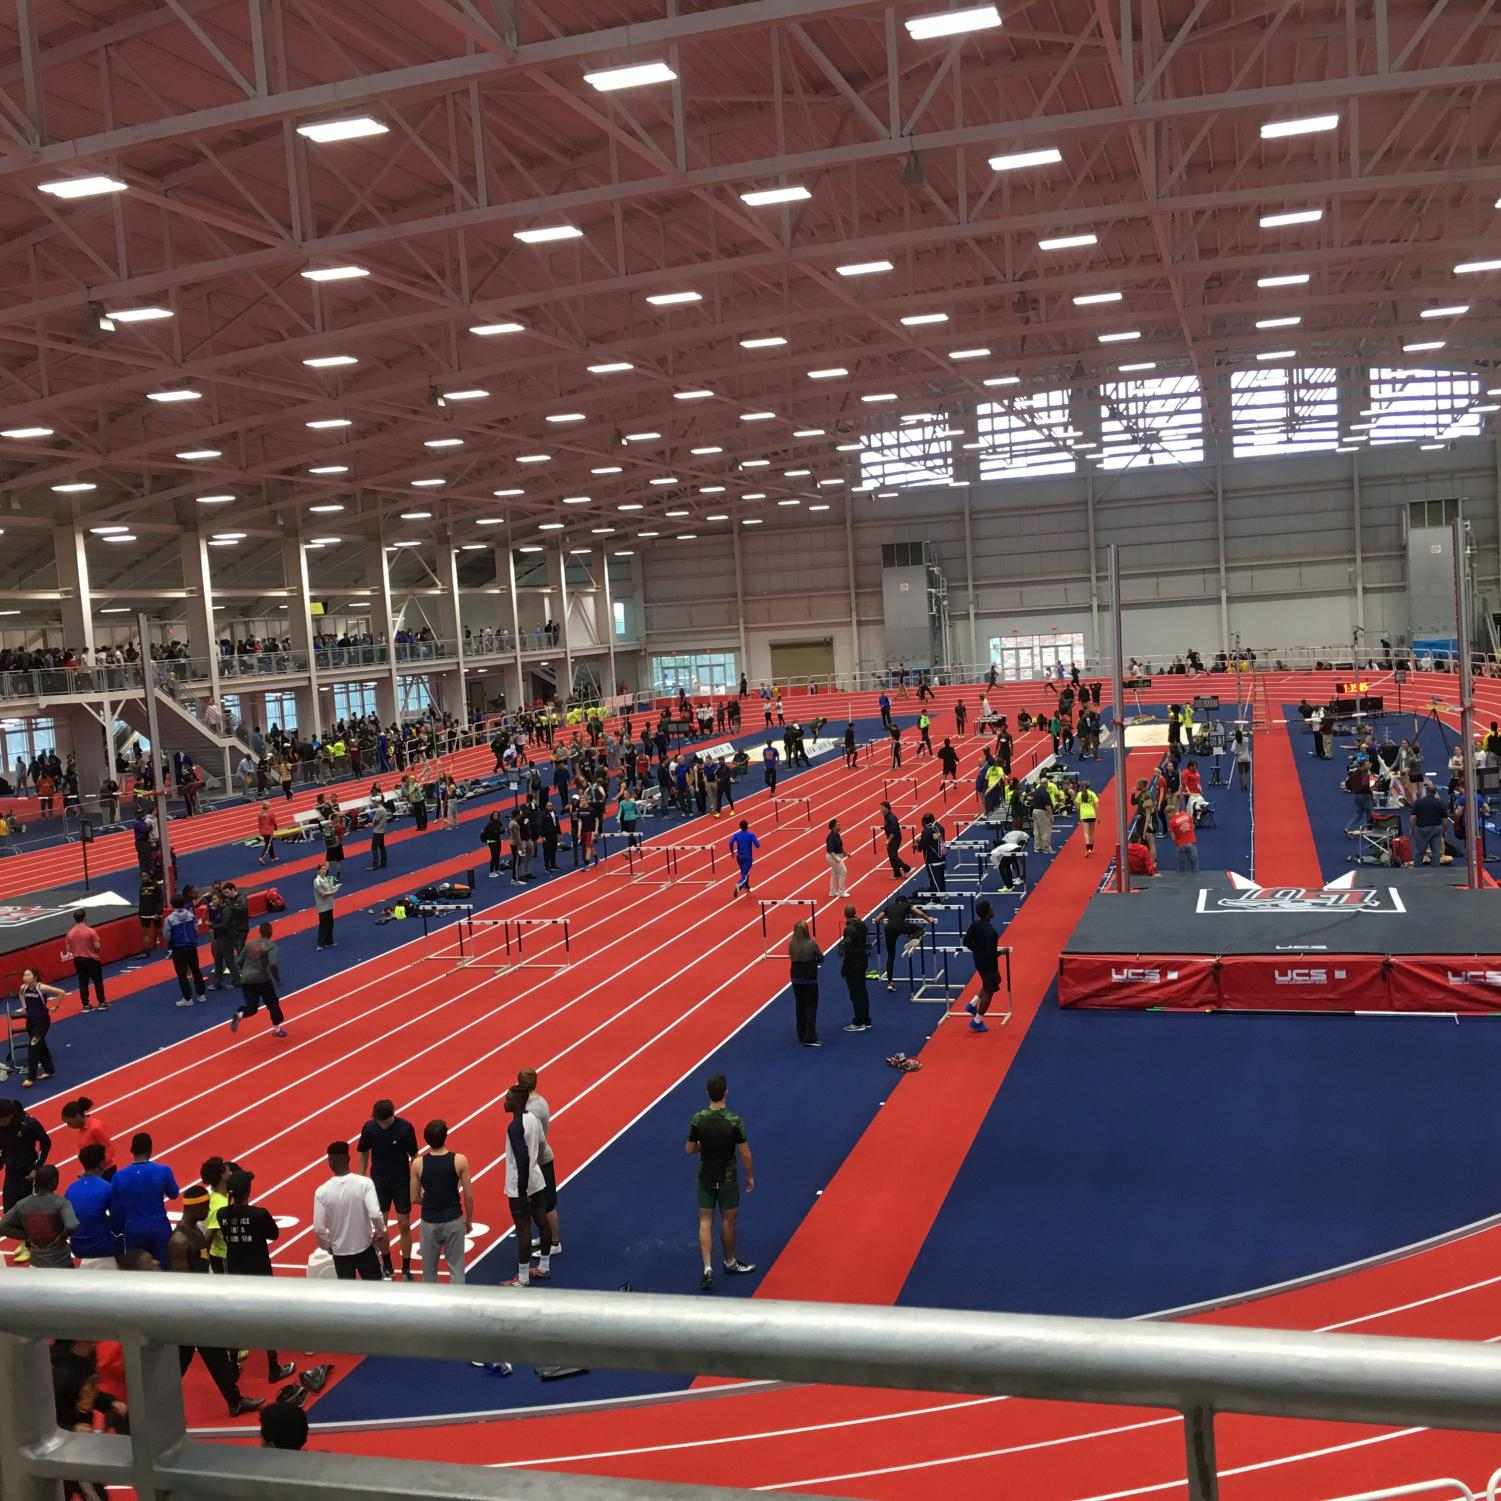 The Virginia Showcase takes place on the indoor track at Liberty University. This elite meet is held on Liberty's state of the art hydraulic banking track, which can have the incline  changed. WS sent 17 athletes last year. Notably, the Spartan girls won the 4x800 meter relay.